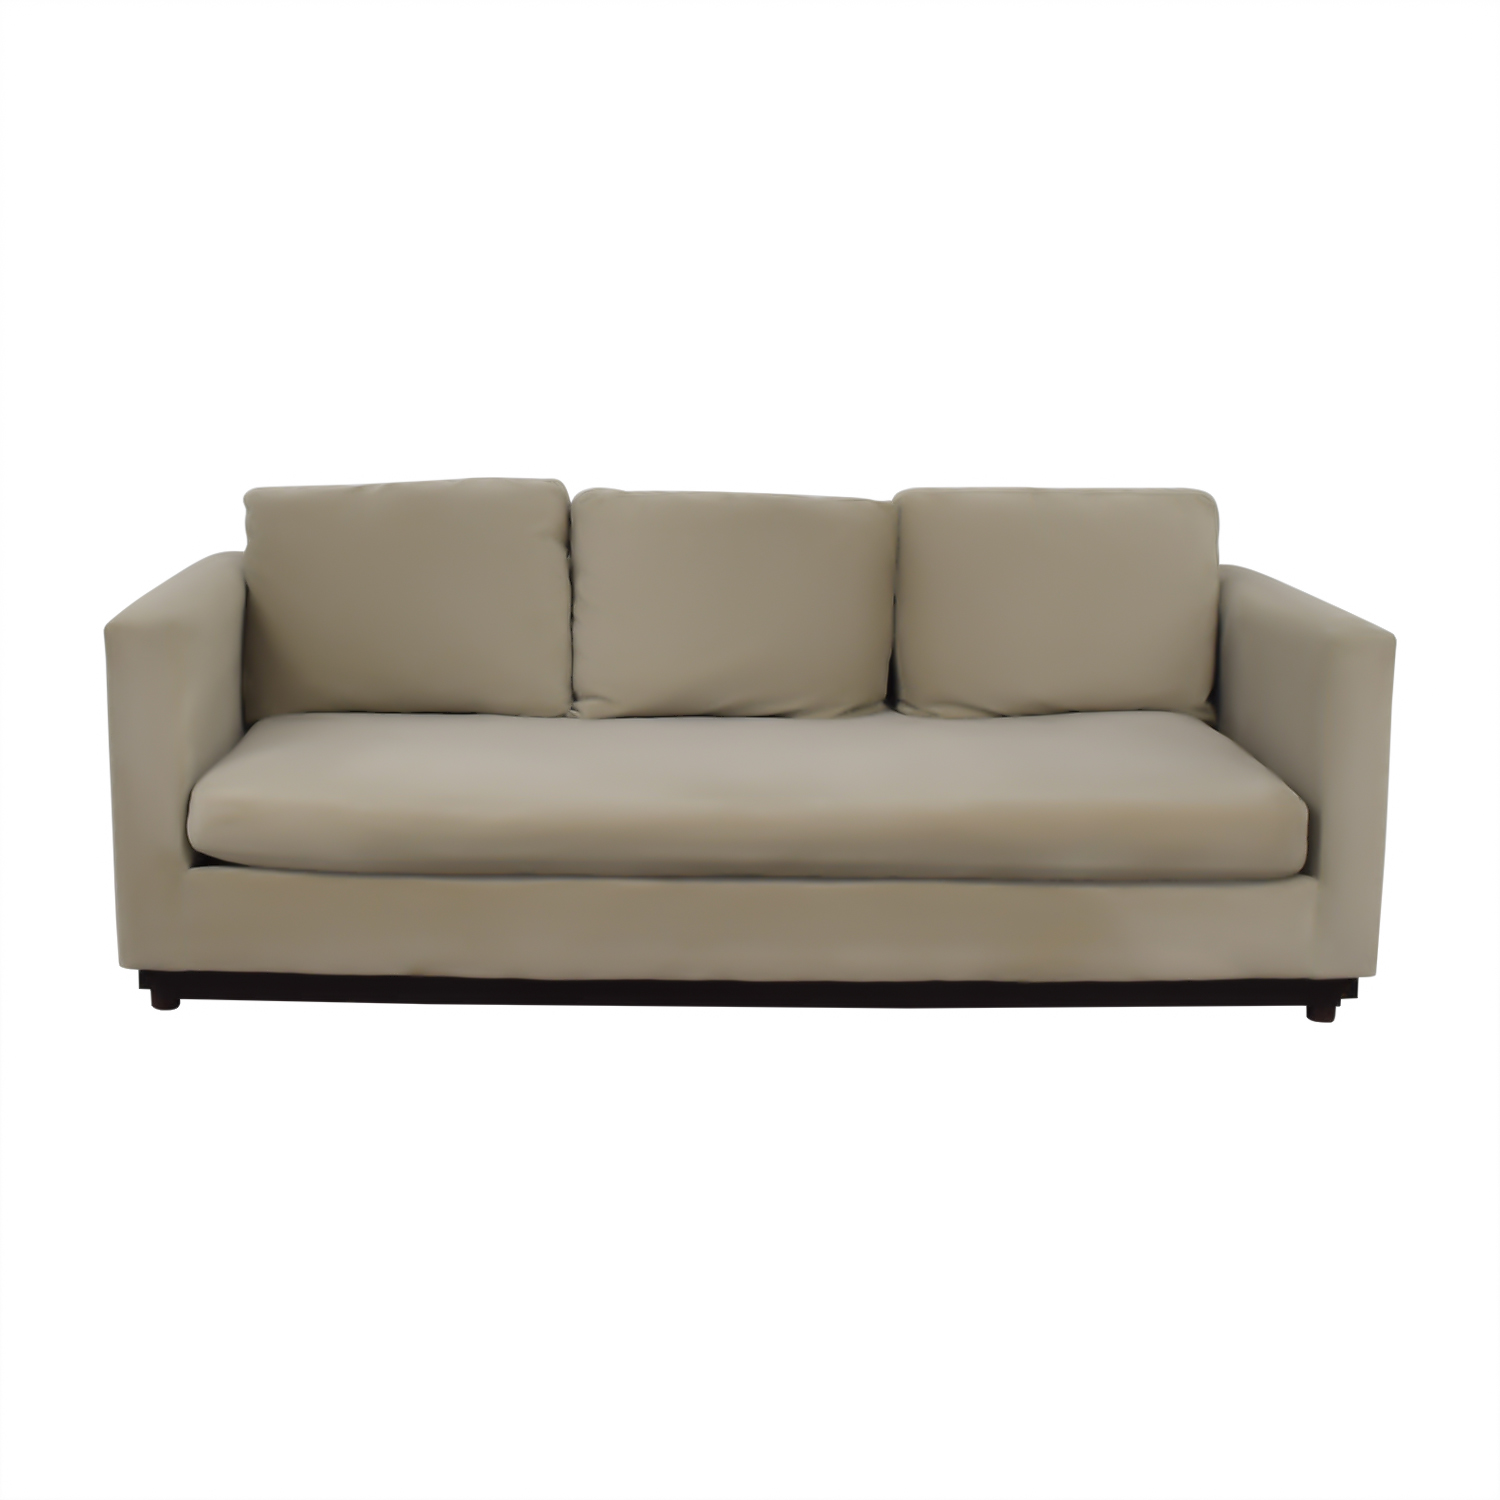 West Elm West Elm Tan Single Cushion Couch second hand